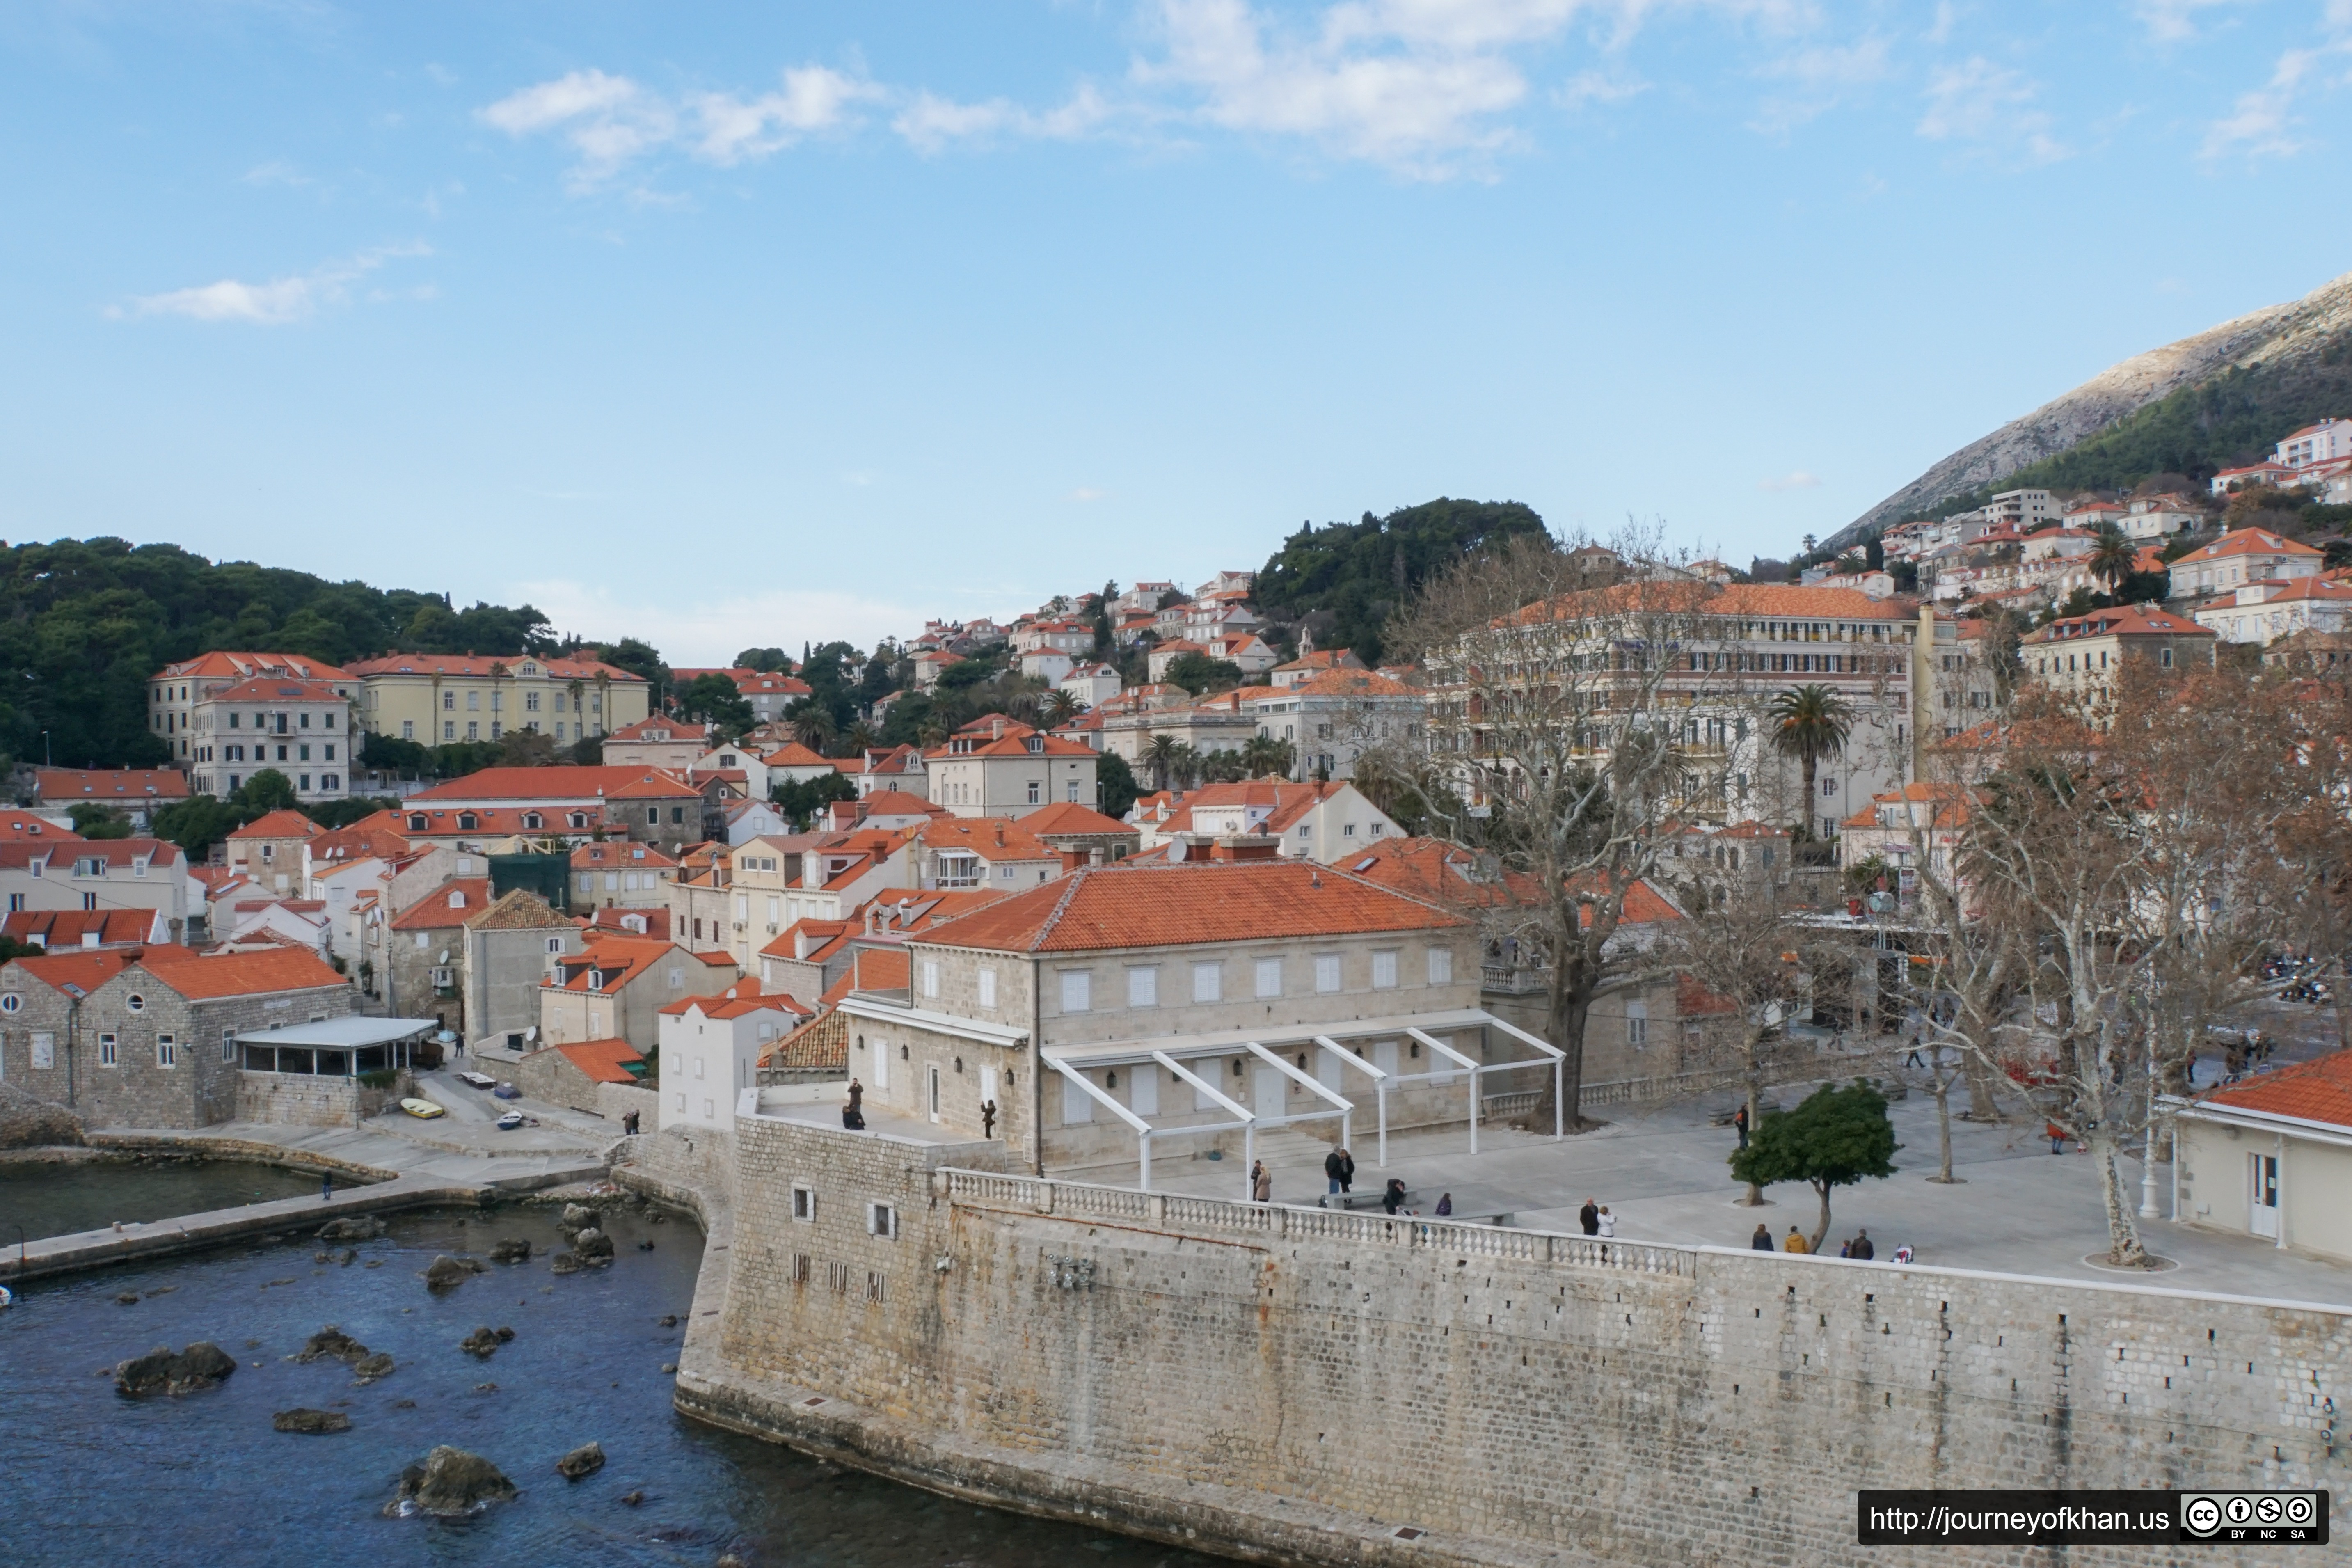 The Old City of Dubrovnik (High Resolution)